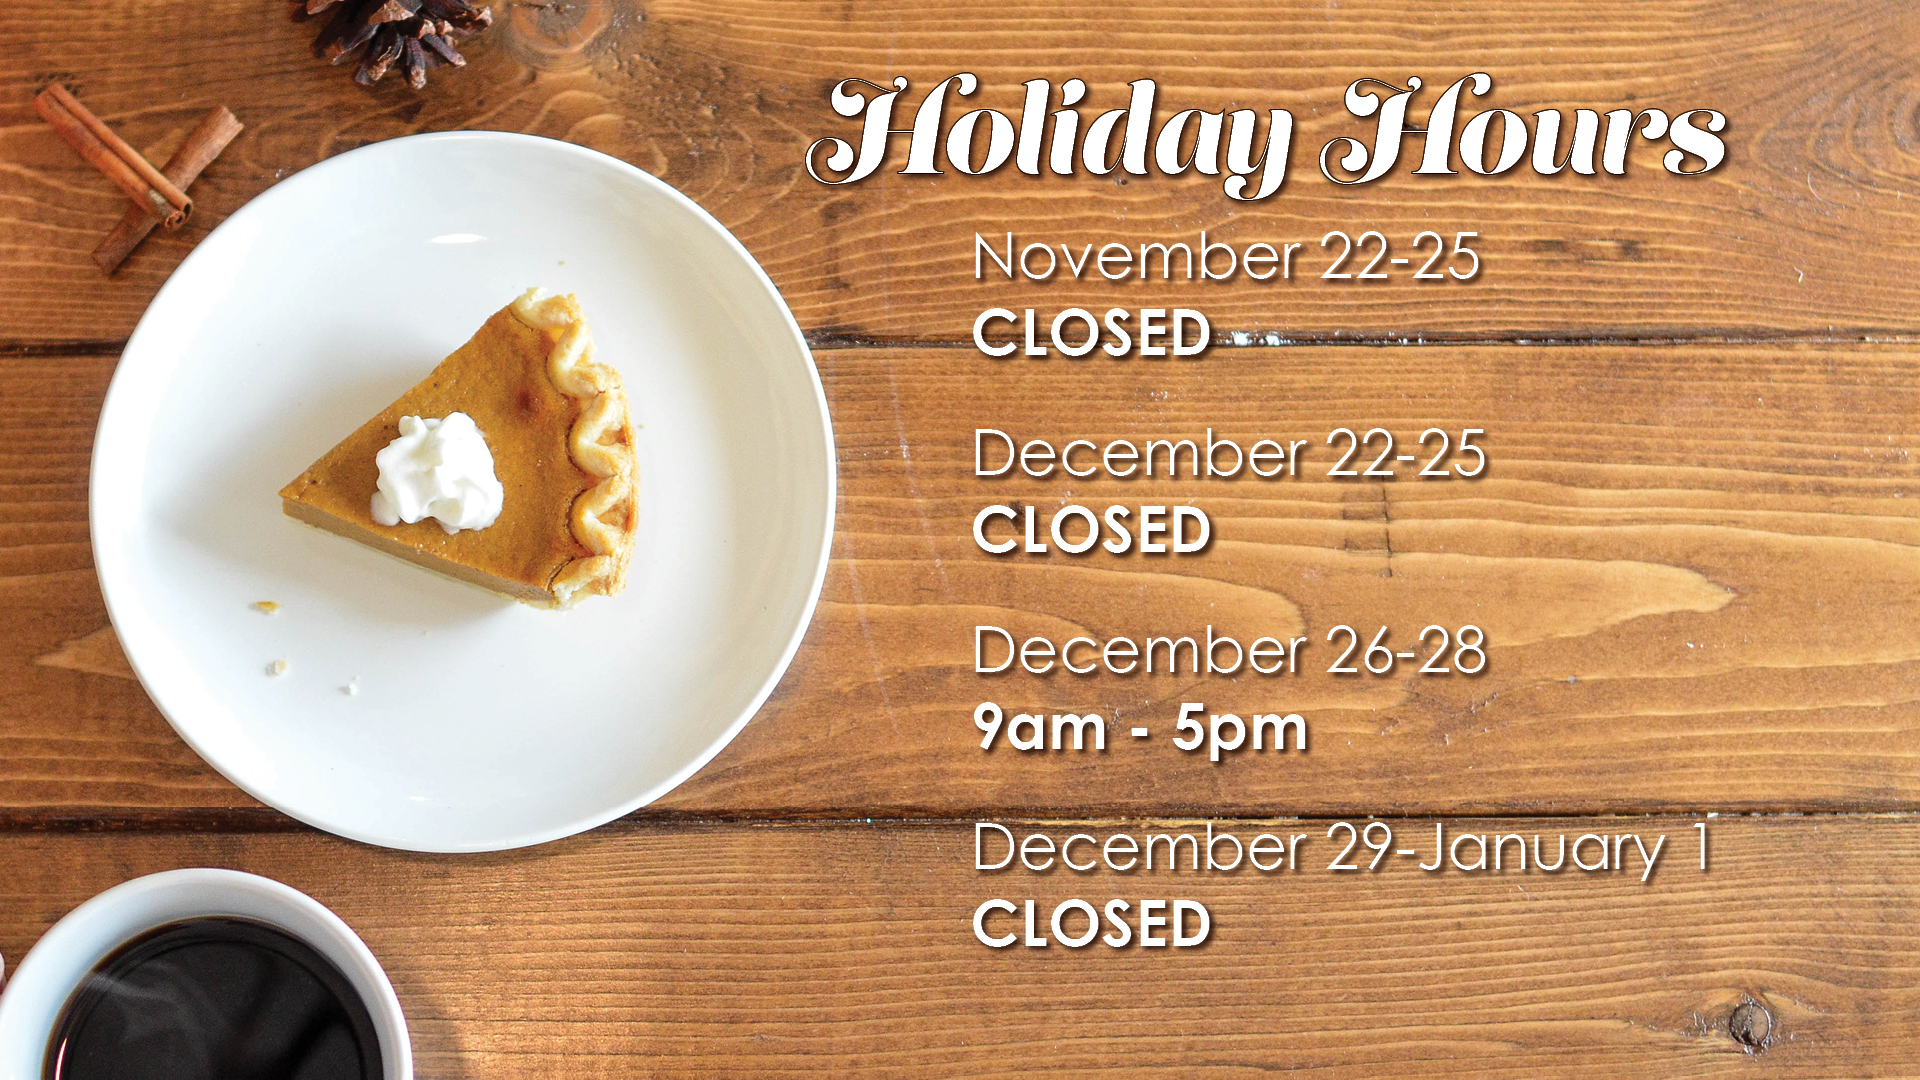 Holiday Hours with Pumpkin Pie on Table as background